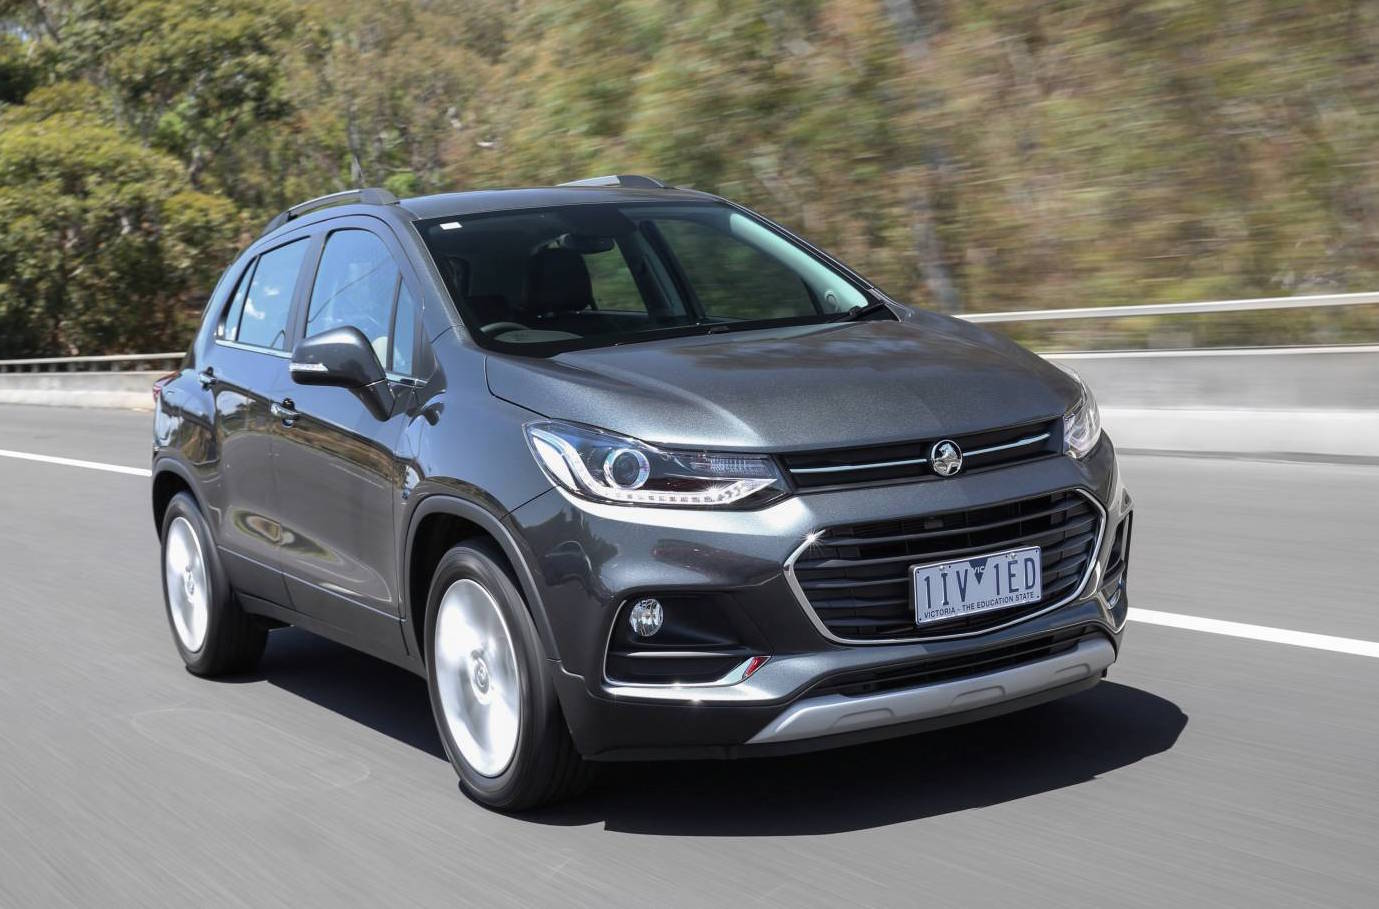 Chevy Suv Models >> 2017 Holden Trax now on sale in Australia from $23,990 | PerformanceDrive